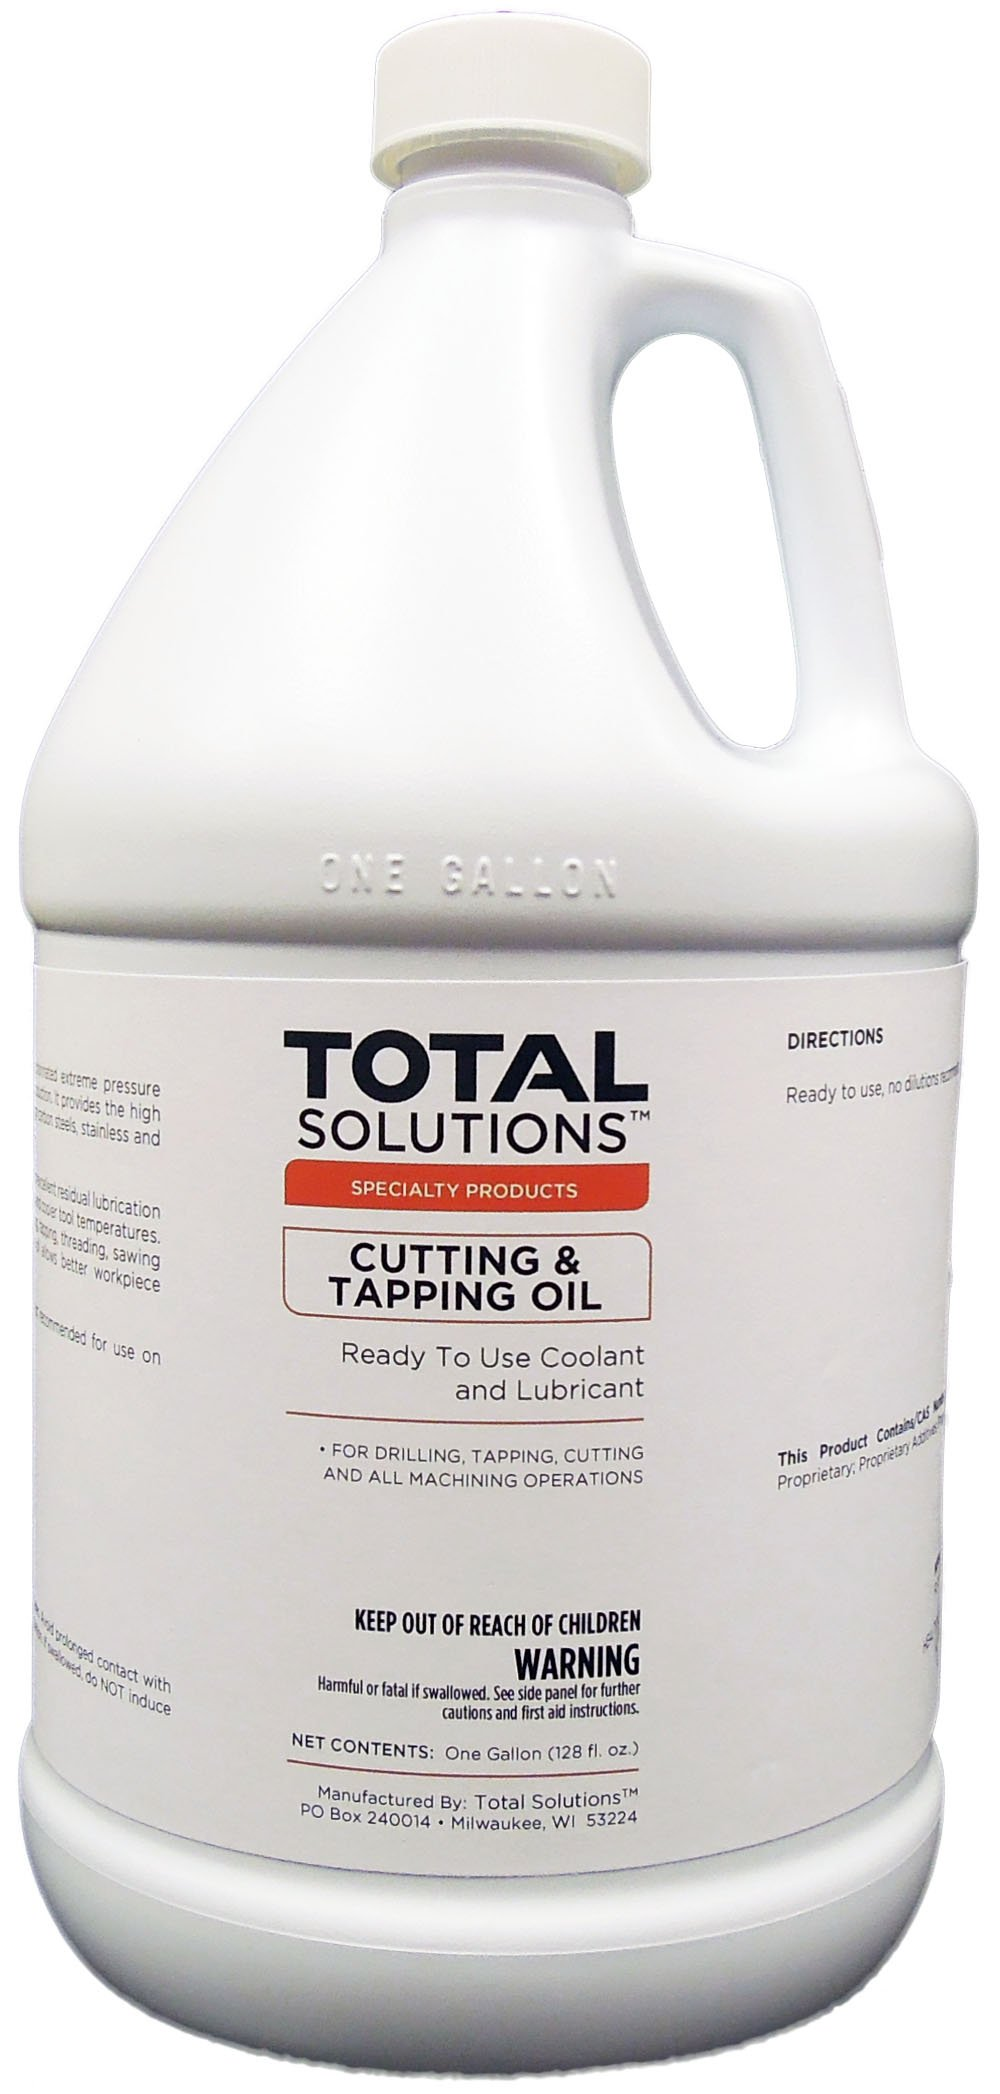 Cutting & Tapping Oil, Oil-based coolant & lube - 4 Gallons by EcoClean Solutions